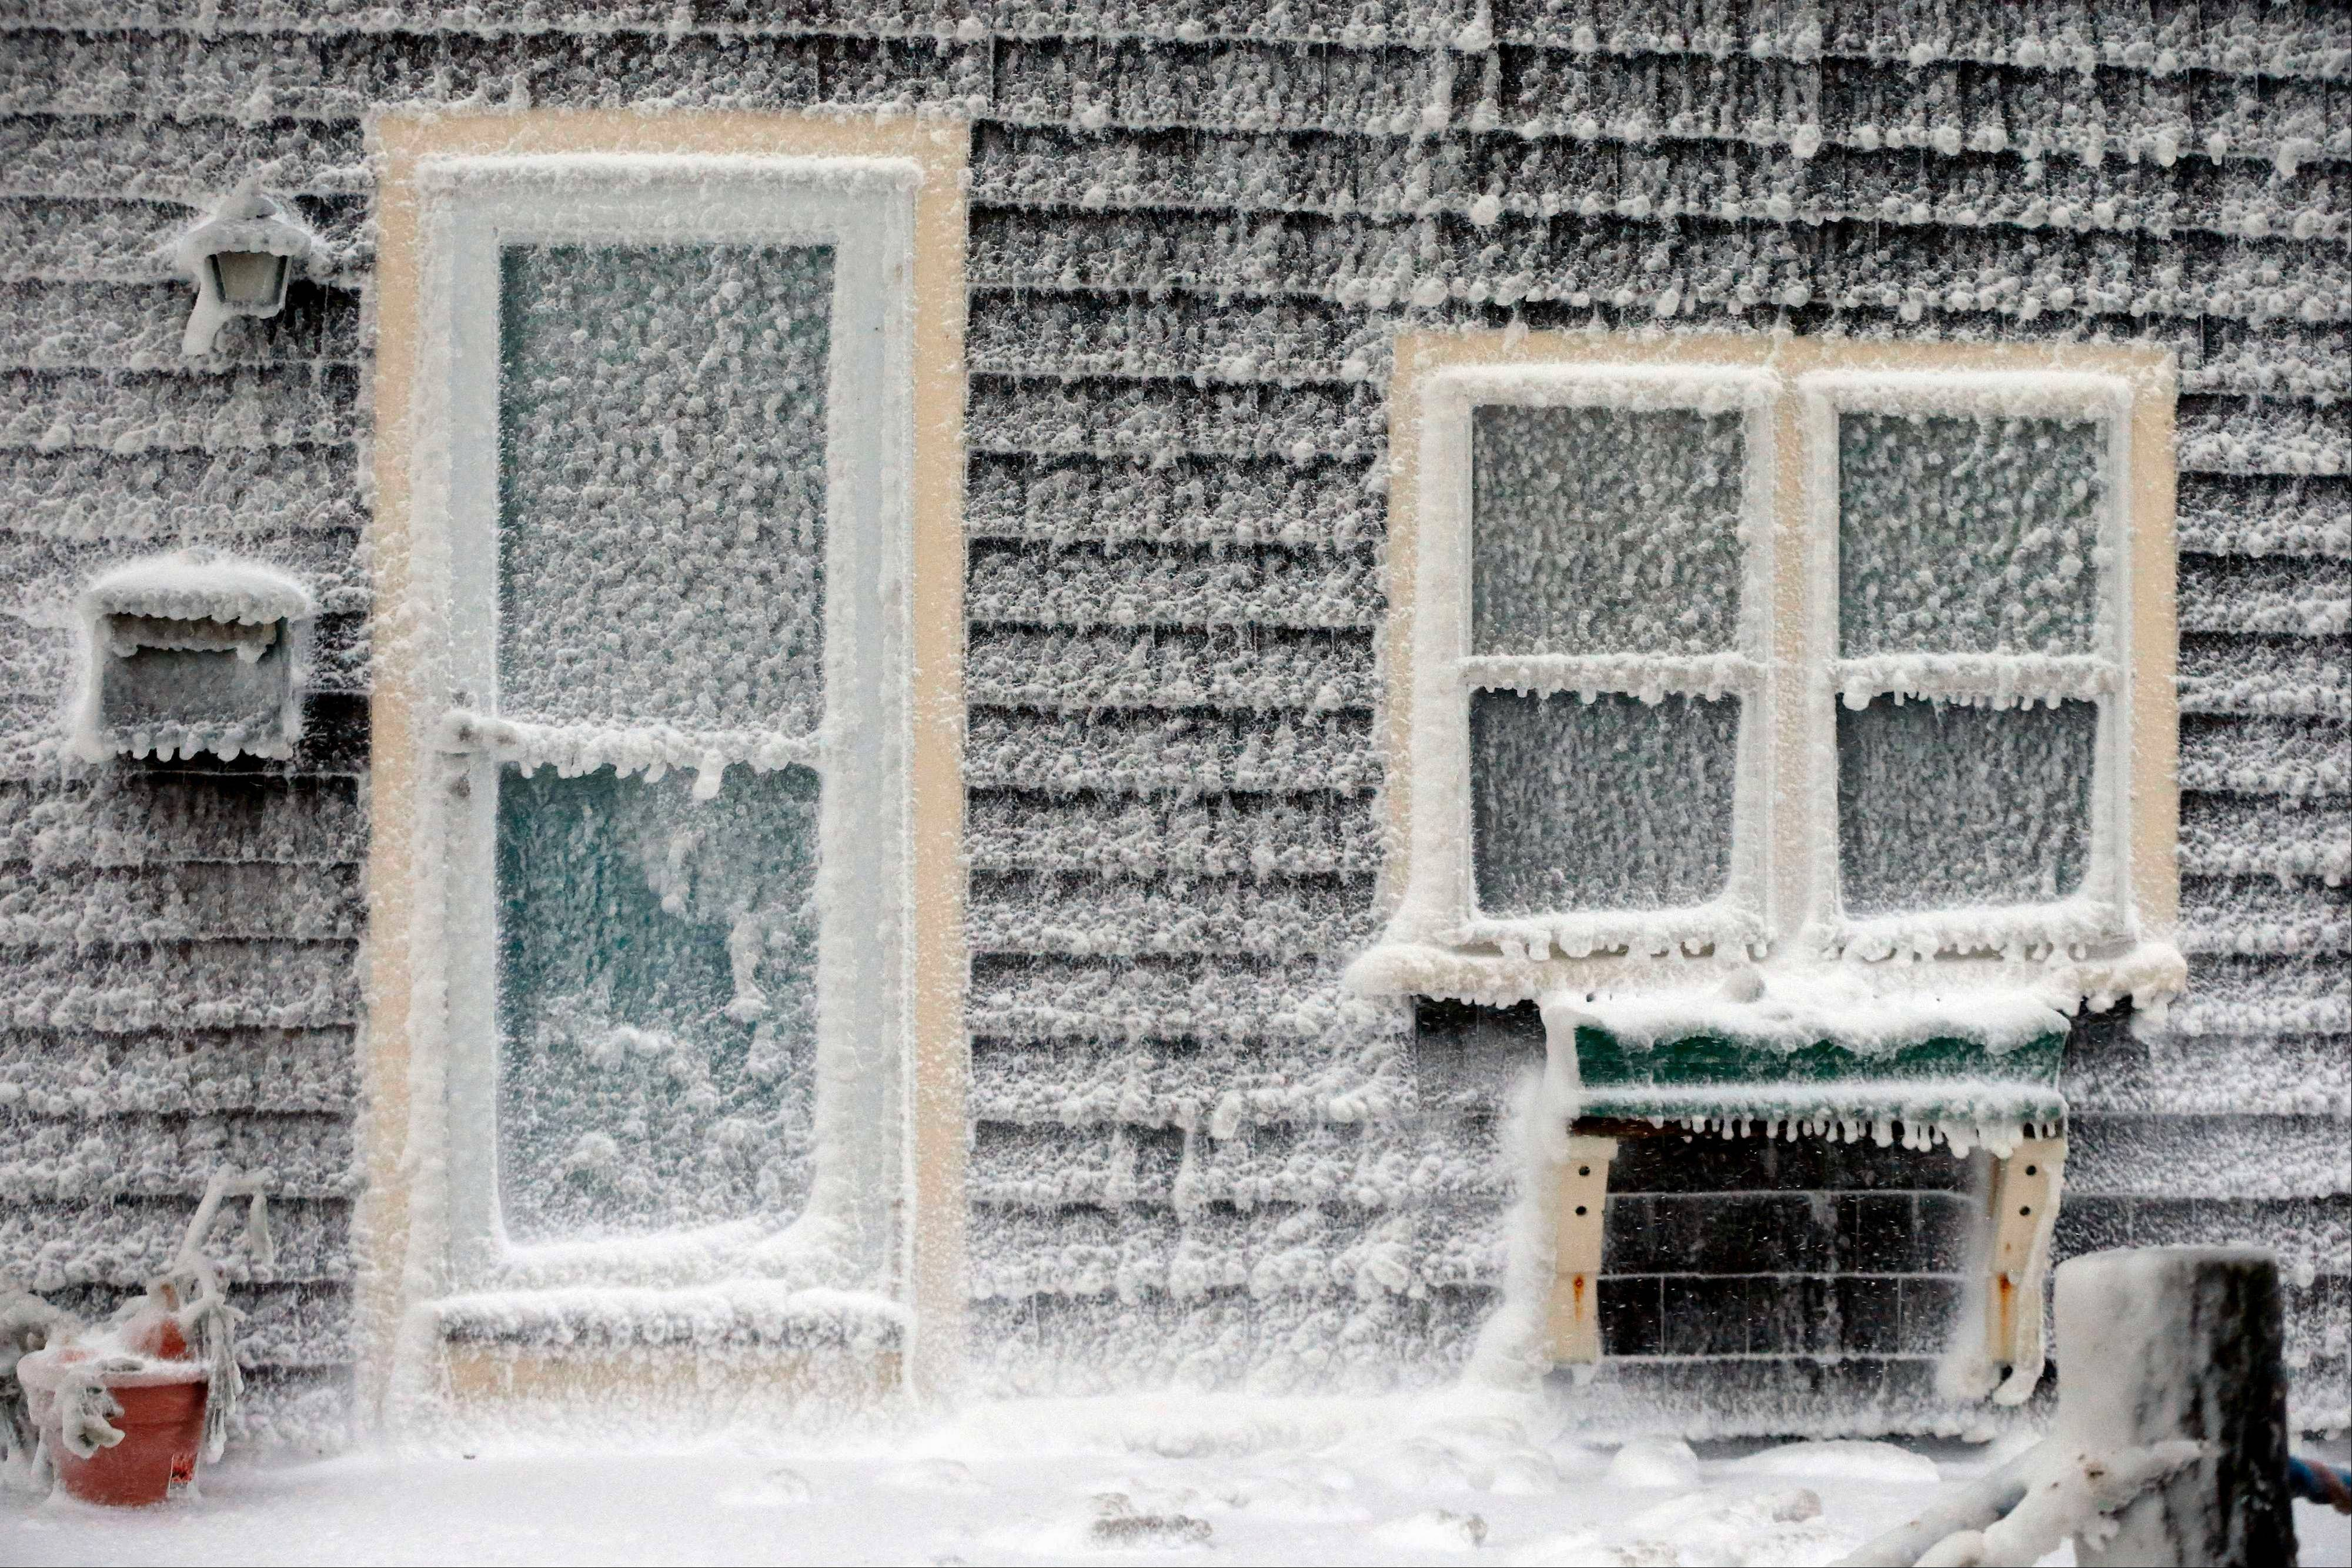 Ice from breaking waves coats a house along the shore in Scituate, Mass., Friday, Jan. 3, 2014. A winter storm slammed into the U.S. Northeast with howling winds and frigid cold, dumping nearly 2 feet of snow in some parts and whipping up blizzard-like conditions Friday.